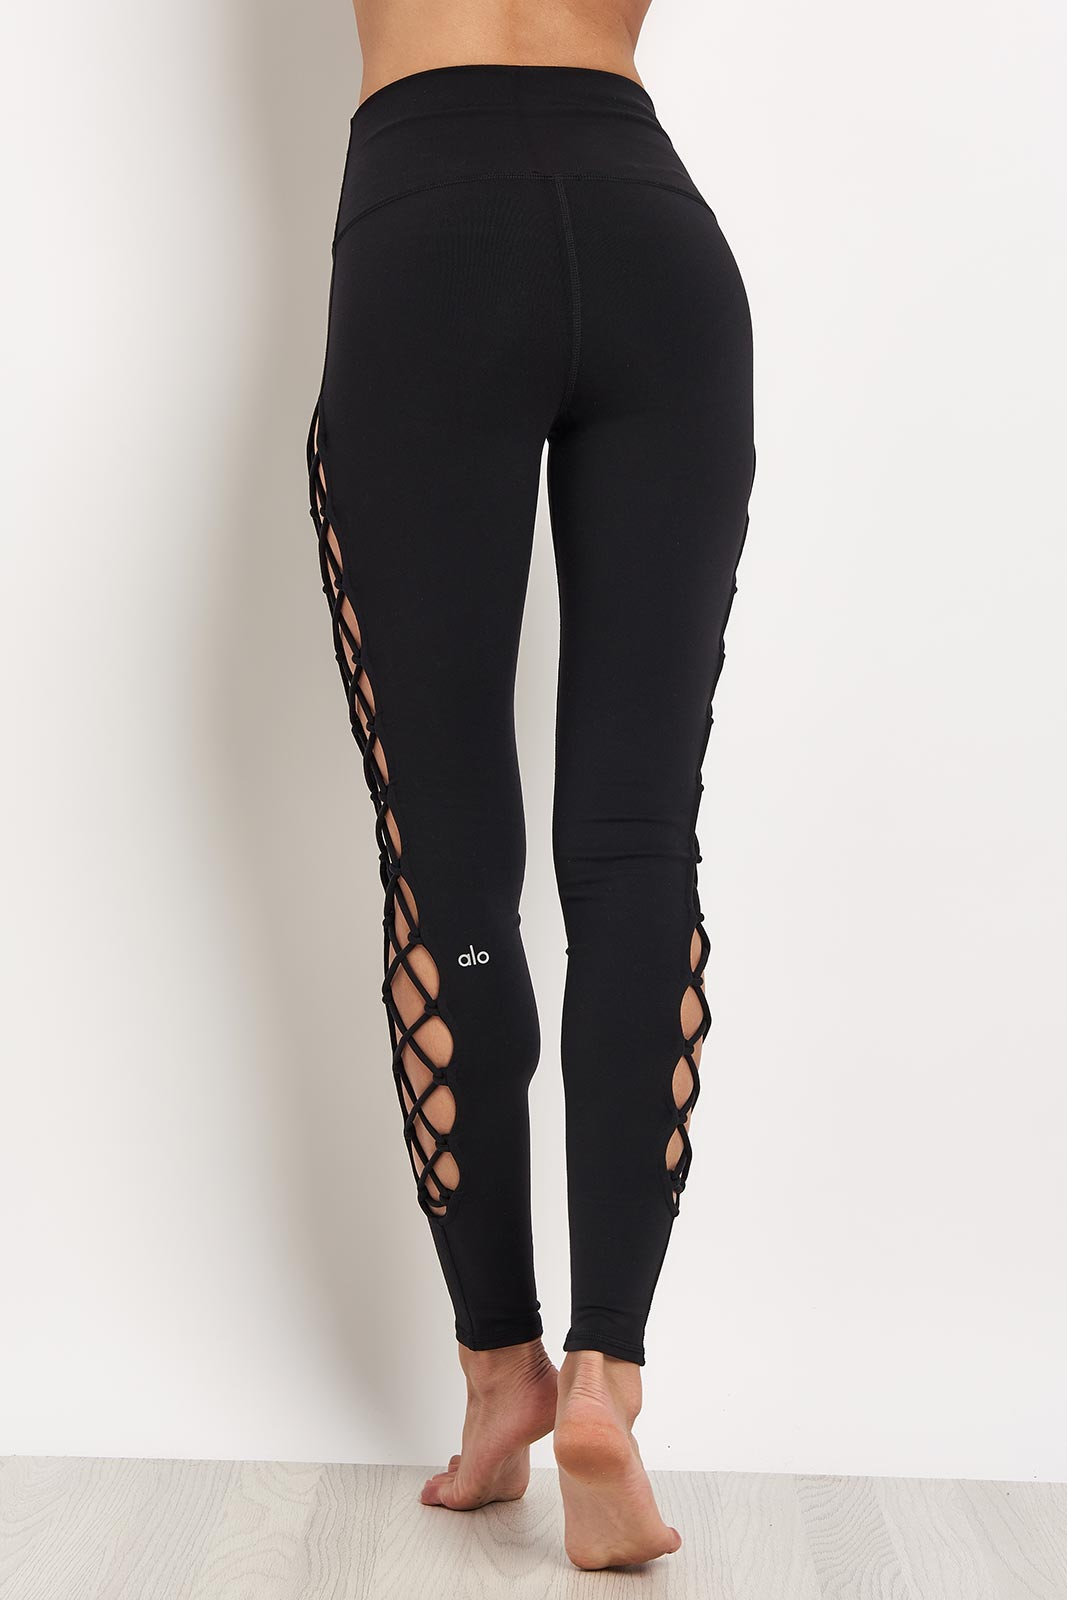 Alo Yoga Interlace Legging - Black image 2 - The Sports Edit